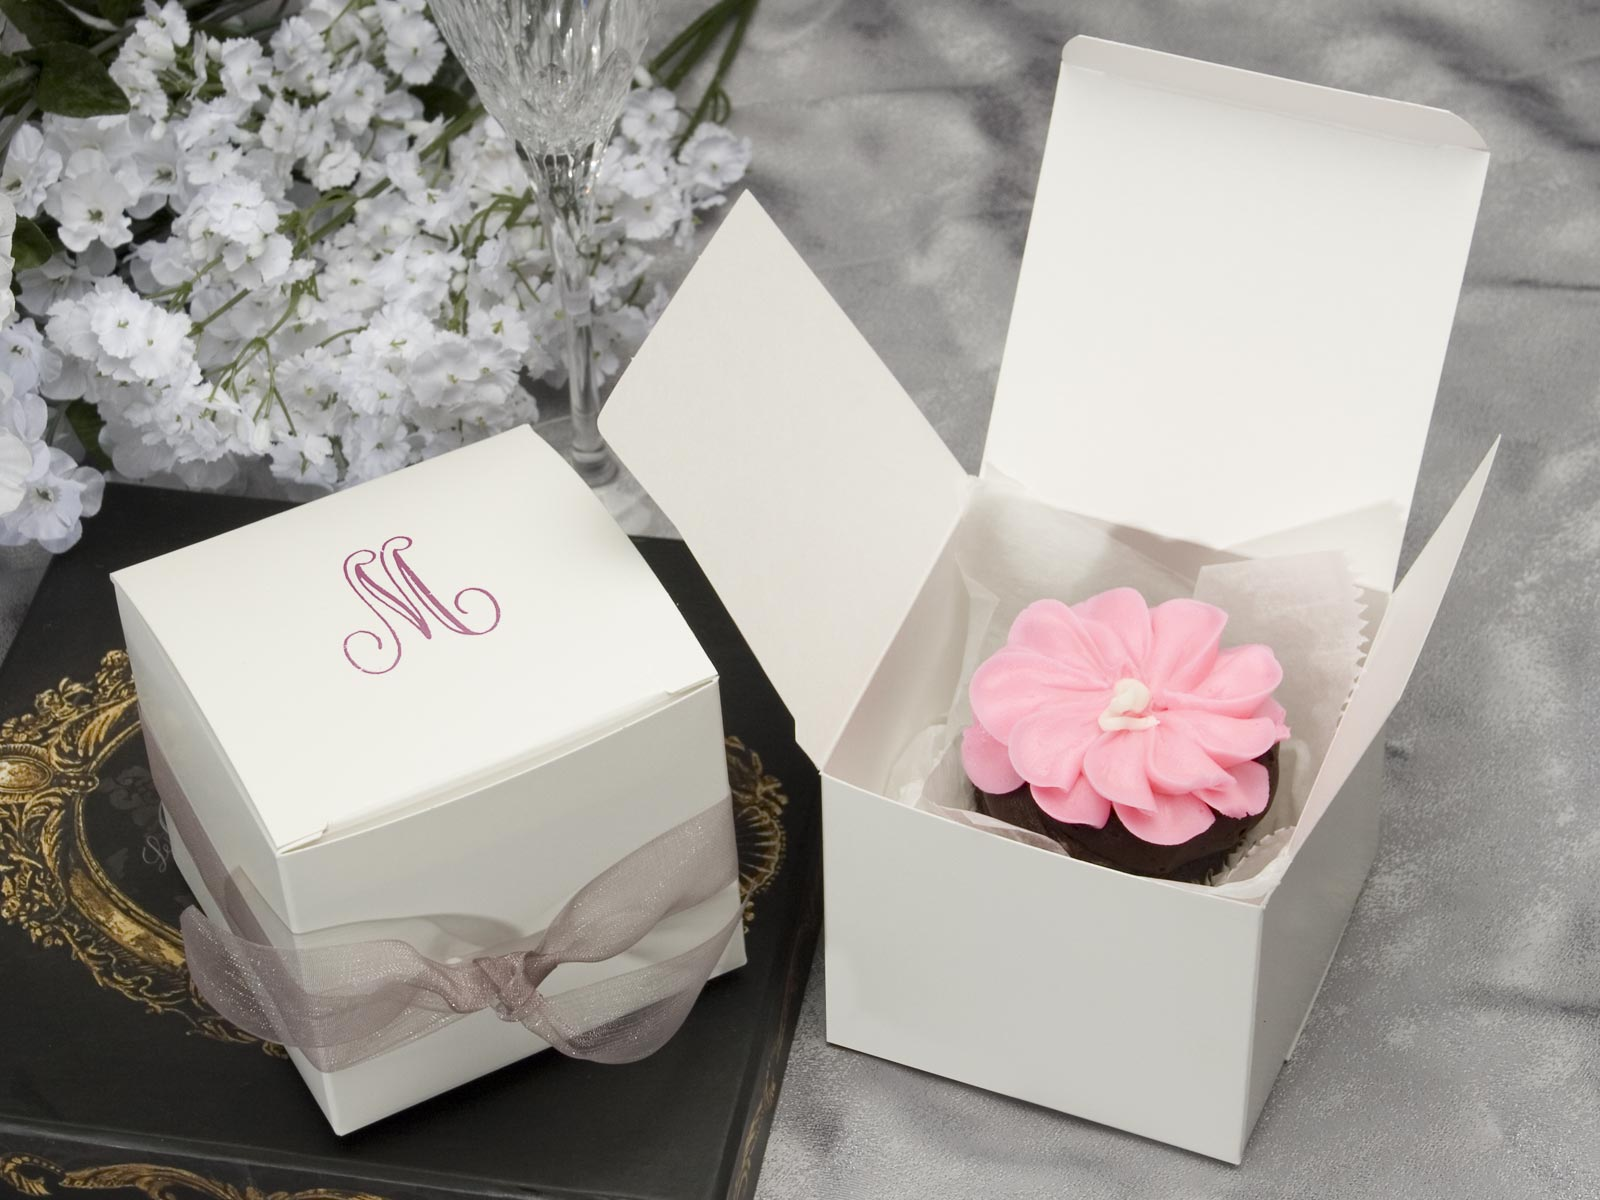 Wedding Gift Box Supplier Malaysia : Wedding favor boxes malaysia - Handmade Malaysia Cake Box For Wedding ...